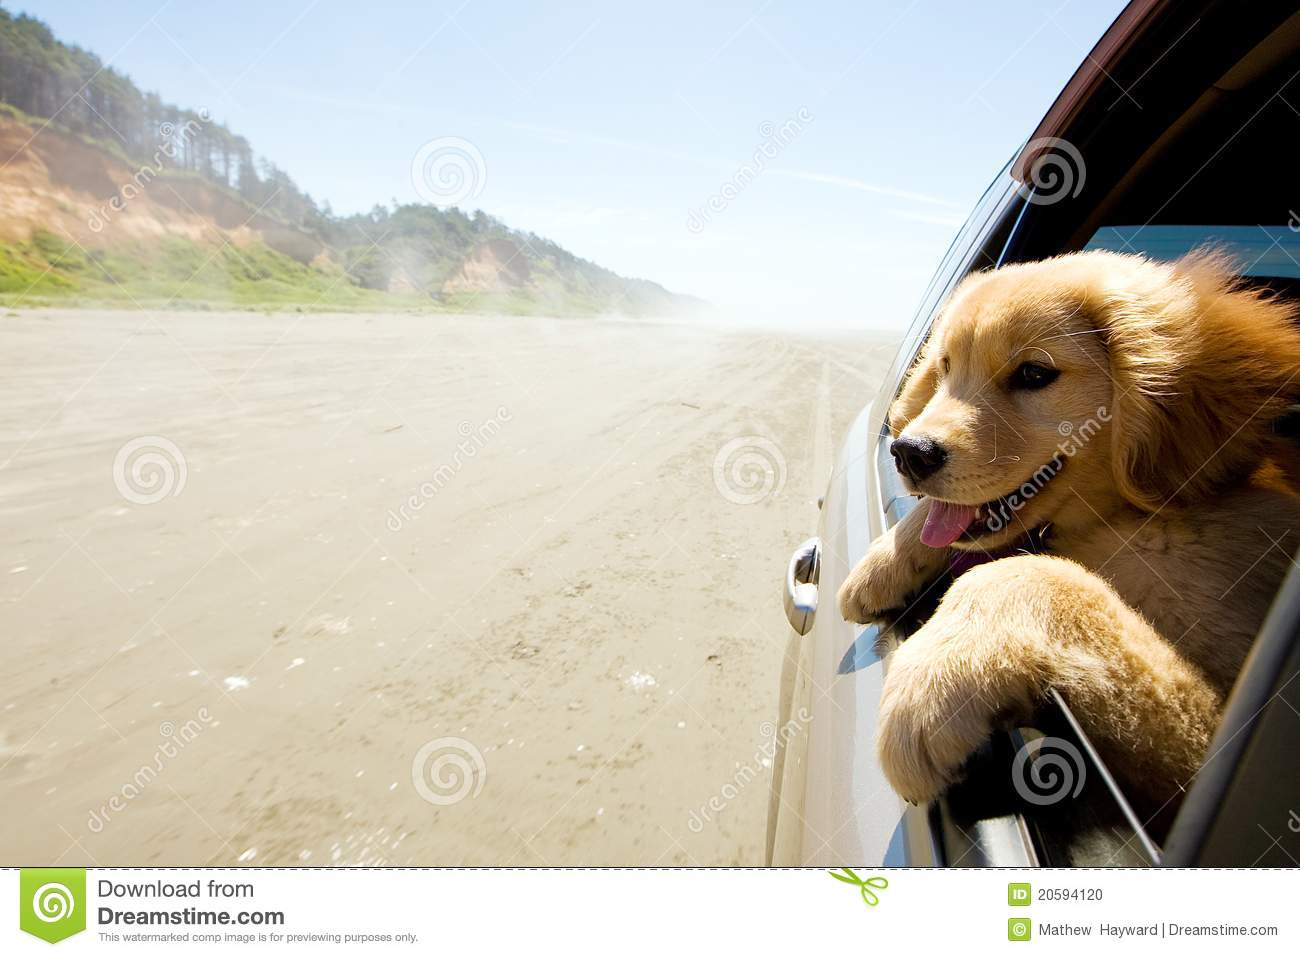 Puppy looking out window of car